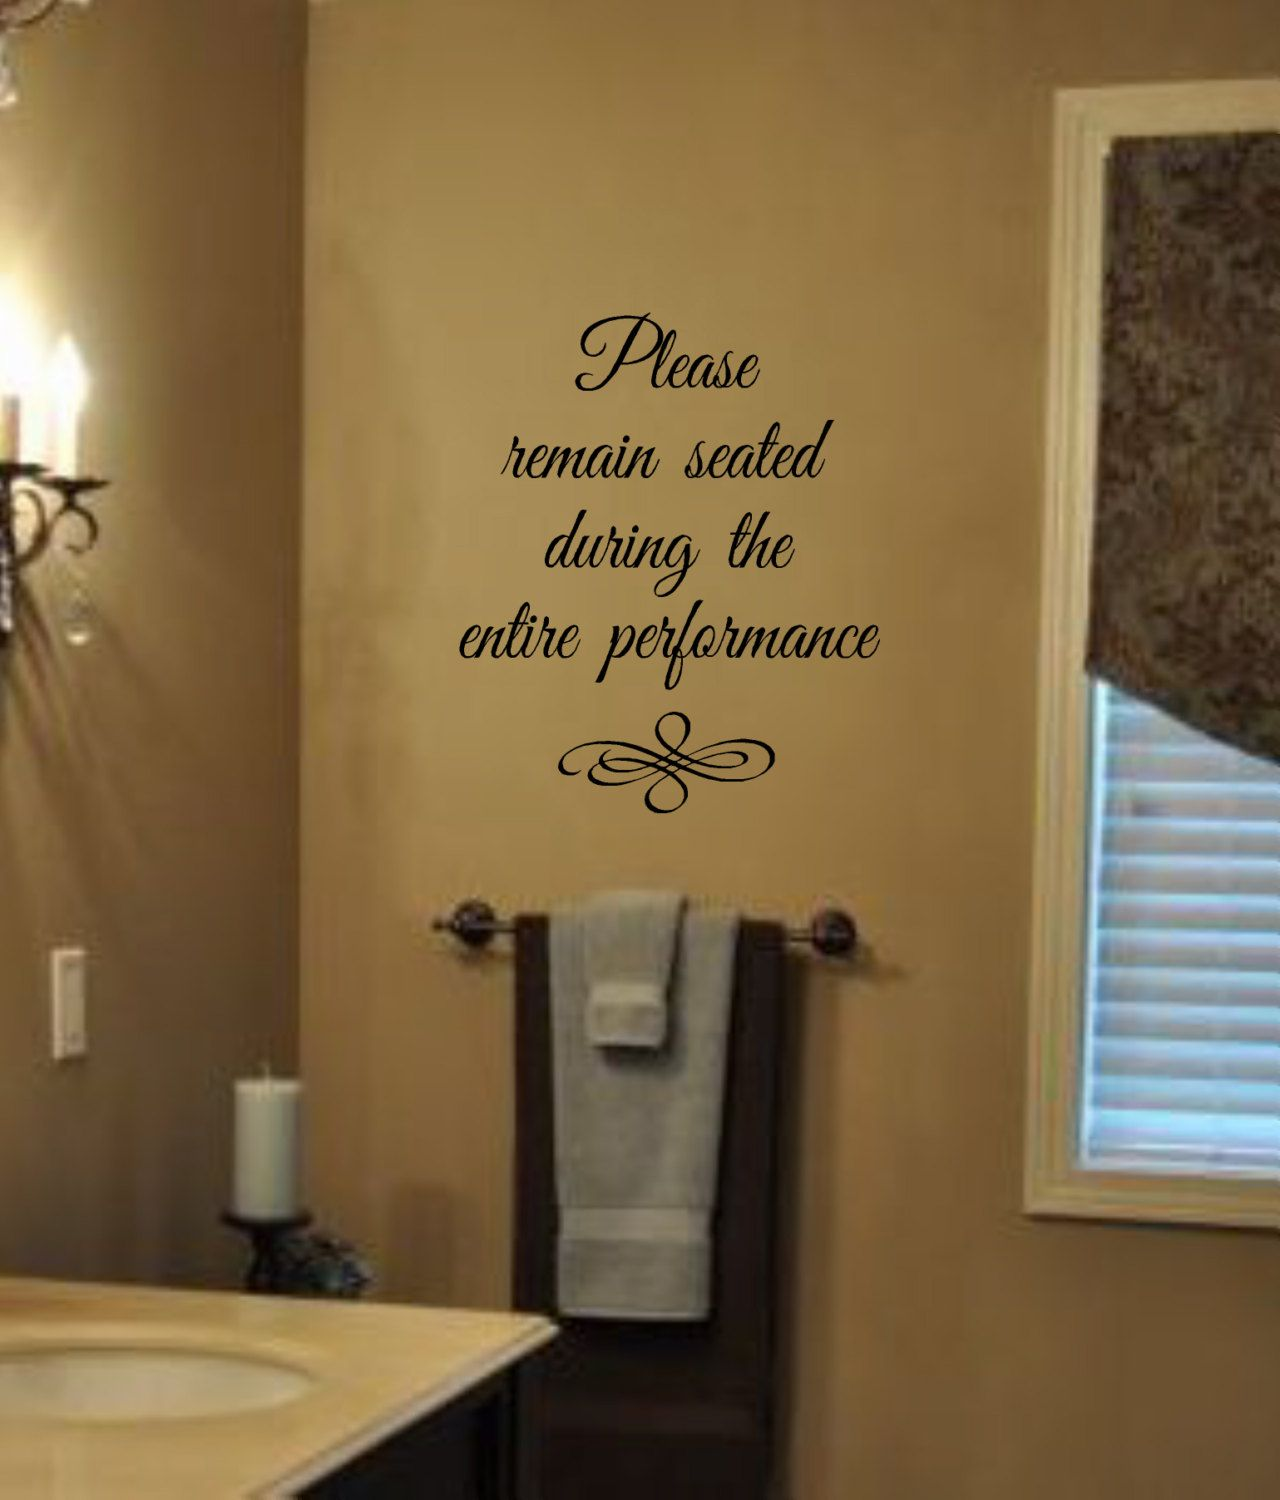 Bathroom Humor Please Remain Seated During The Entire Performance Vinyl Wall  Decal   Bathroom Decor  Movie Theater  Man Cave By Landbgraphics On Etsy